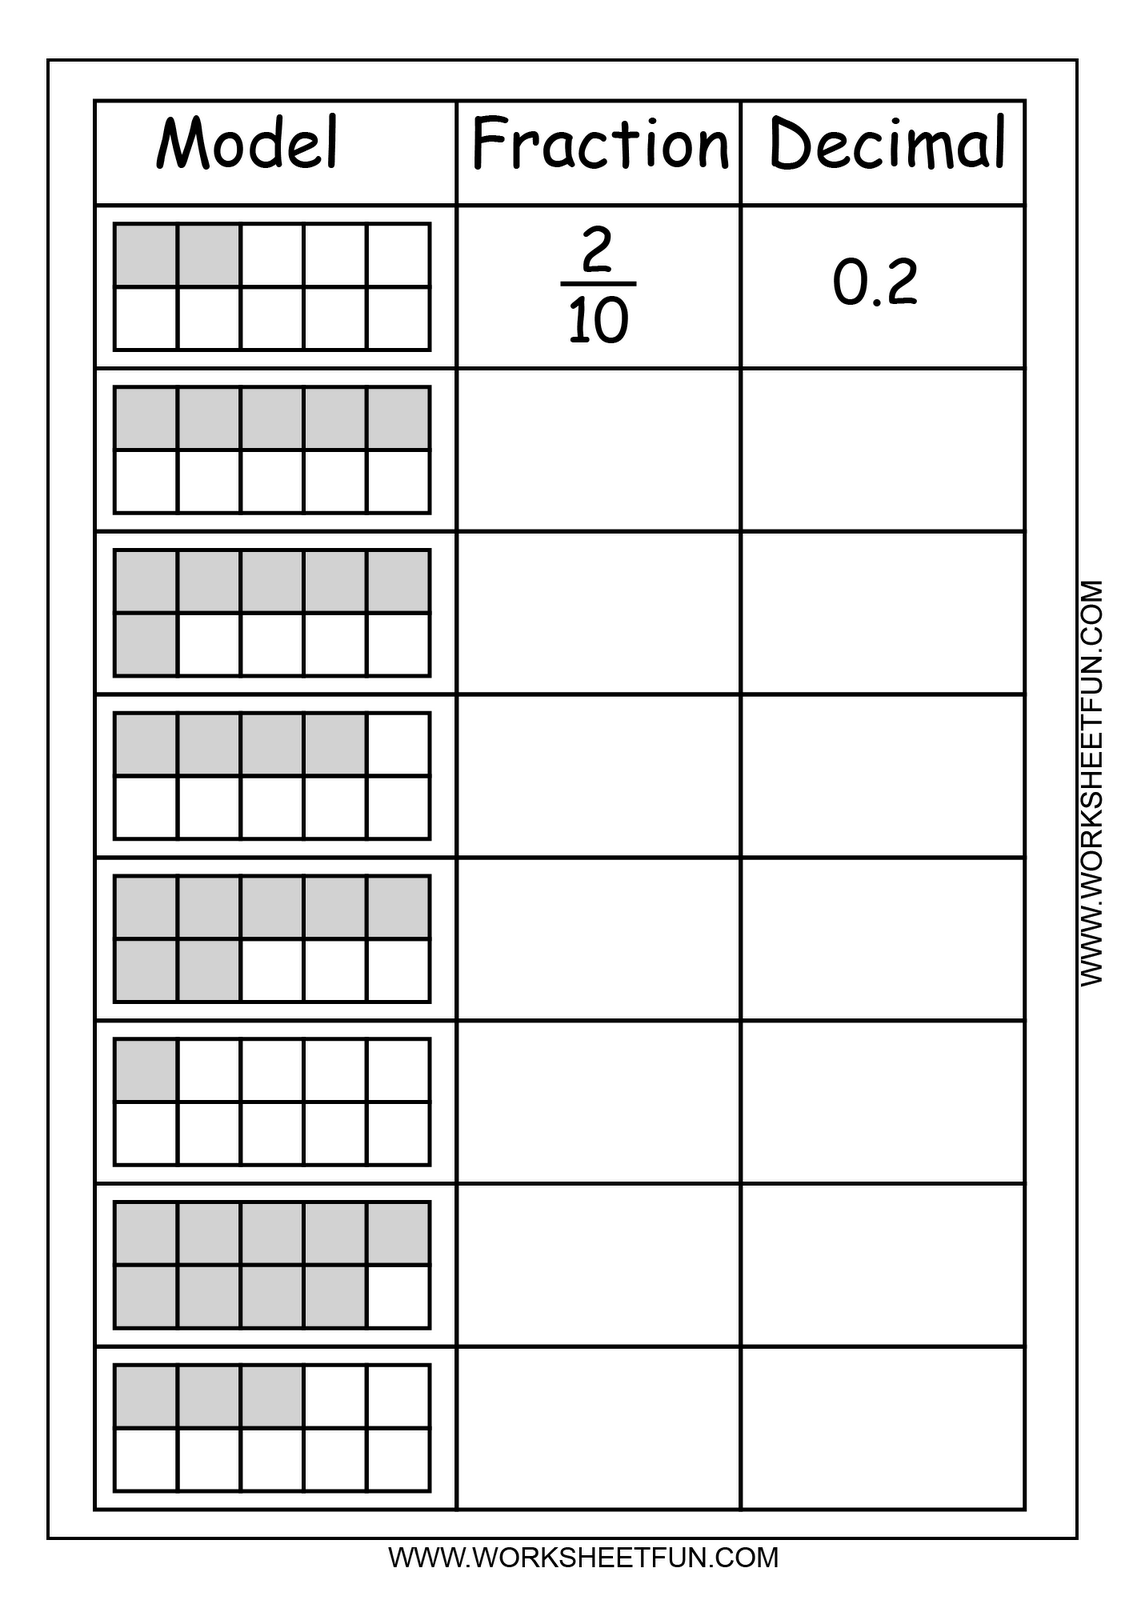 Worksheetfun FREE PRINTABLE WORKSHEETS Math – Fractions to Decimal Worksheet